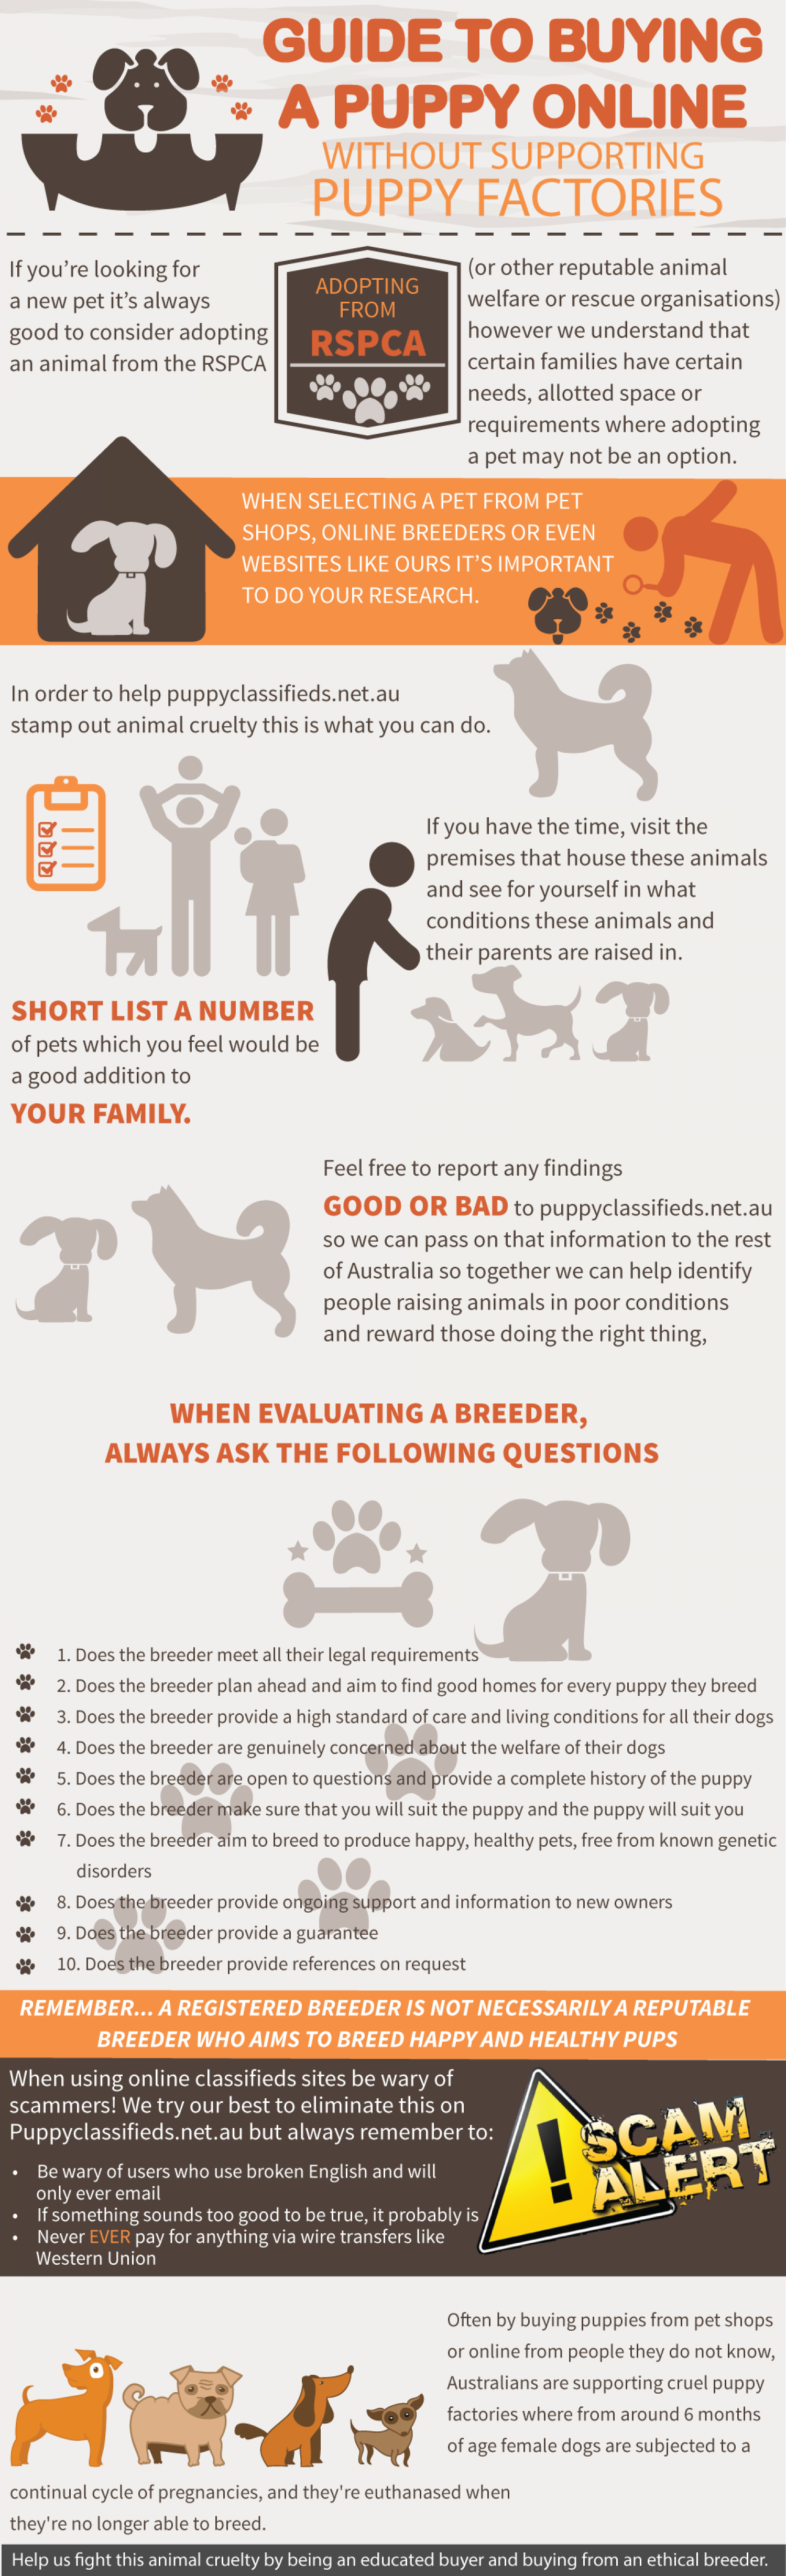 Guide to Buying a Puppy Online Without Support Puppy Factories  Infographic